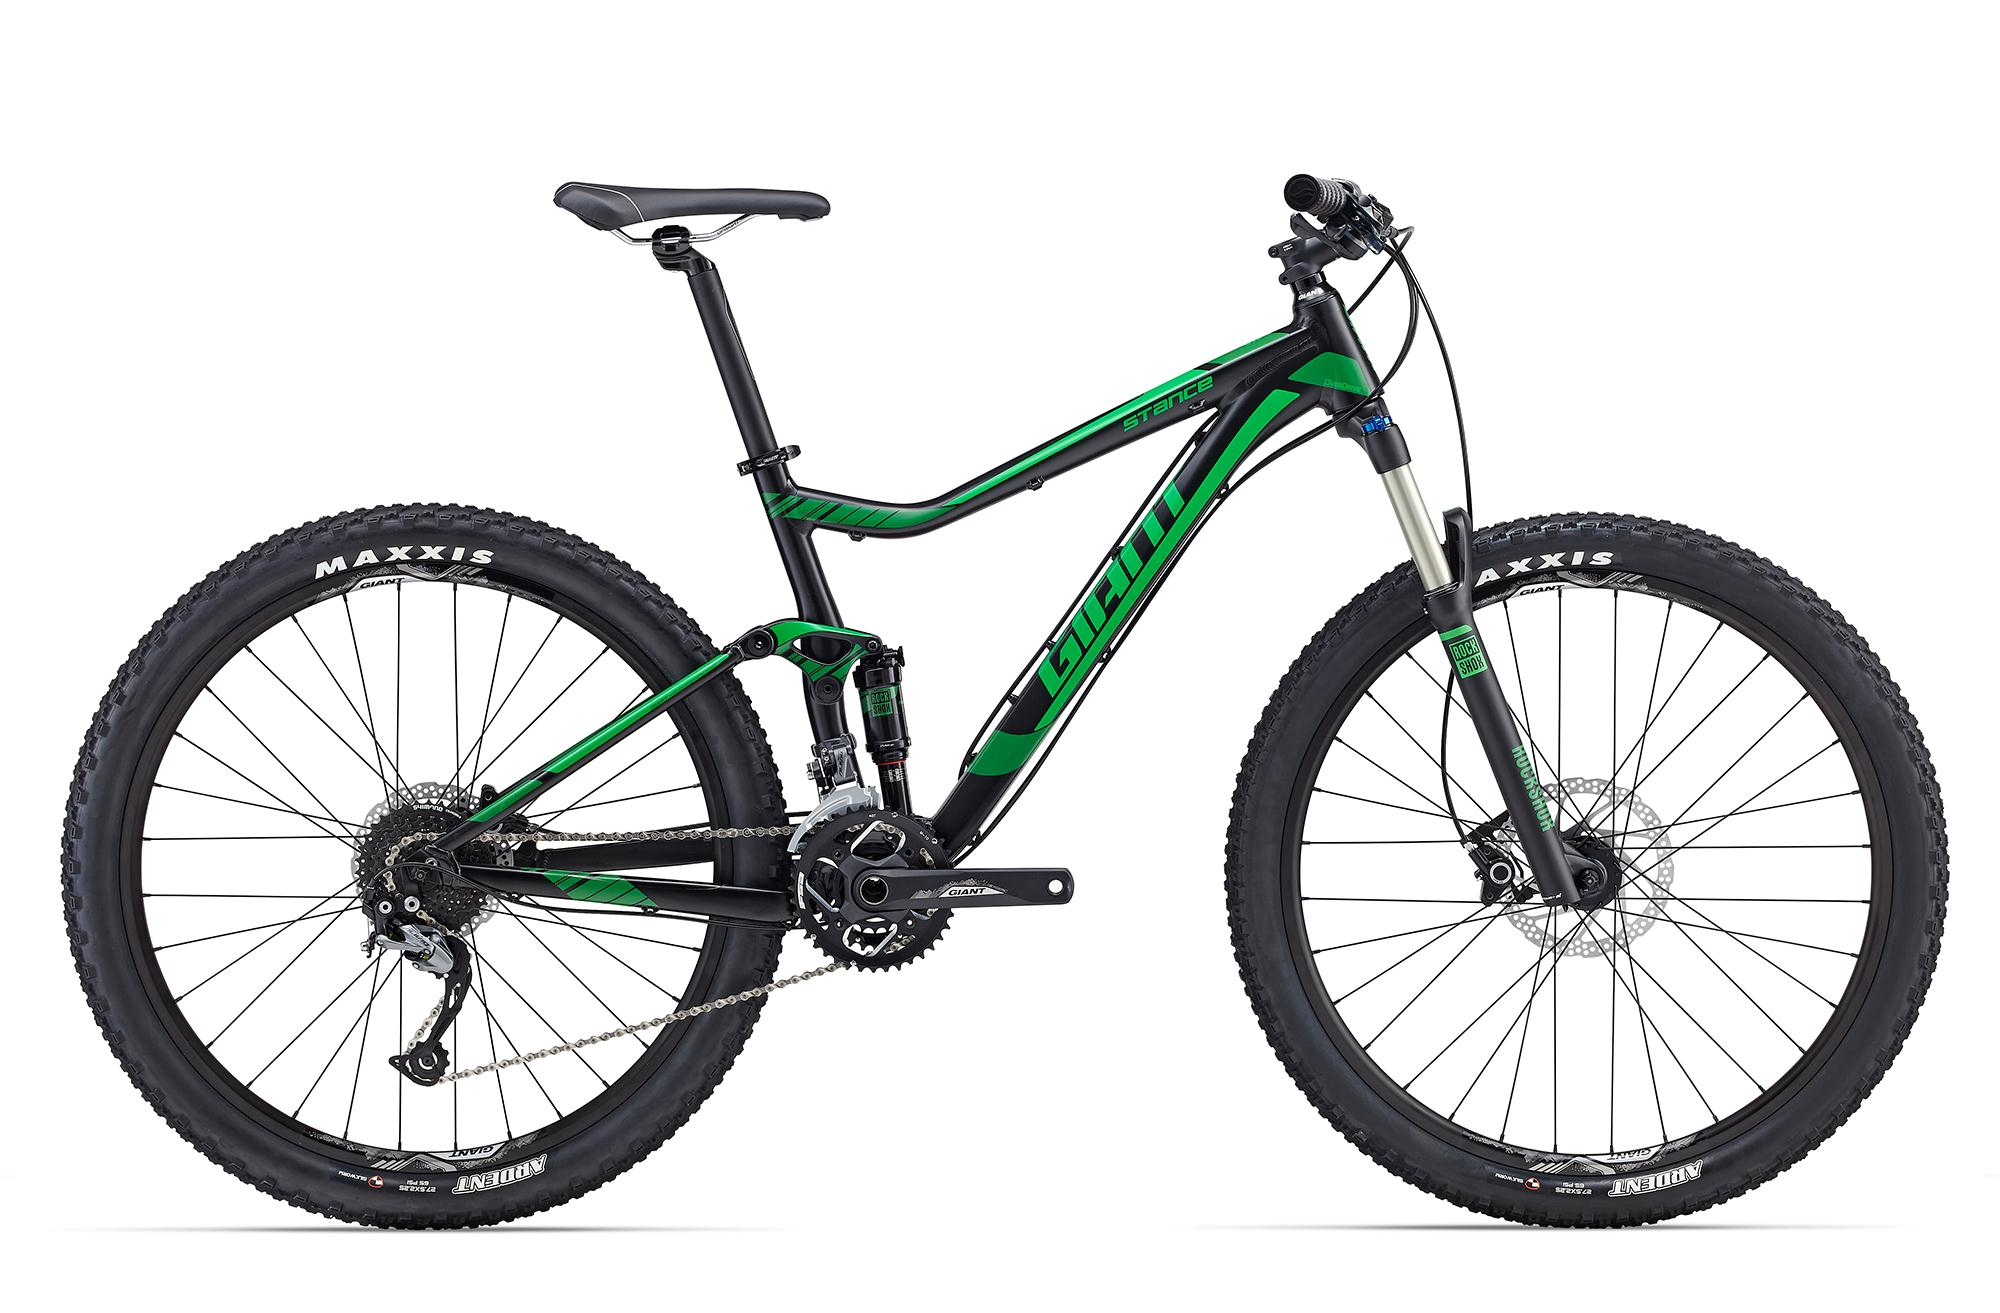 2016 GIANT STANCE 27.5 FULL SUSPENSION MOUNTAIN BIKE